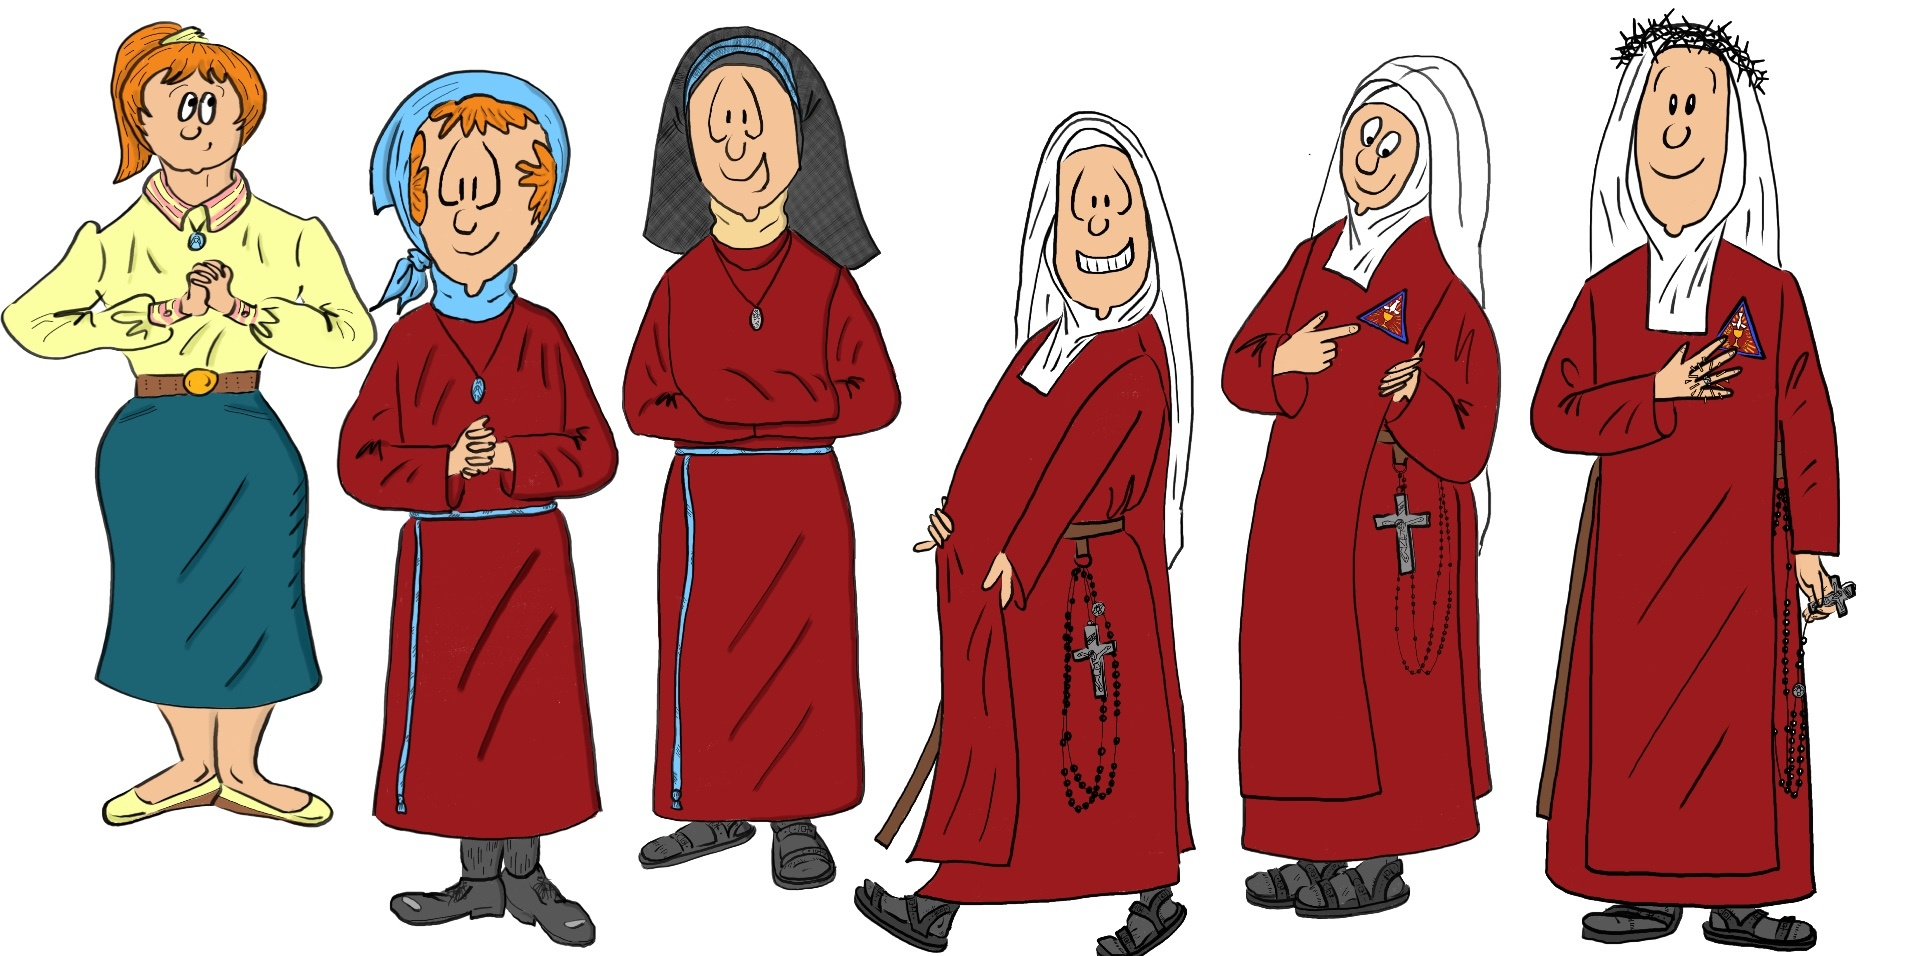 Steps - How Does One Become A Nun? - Handmaids